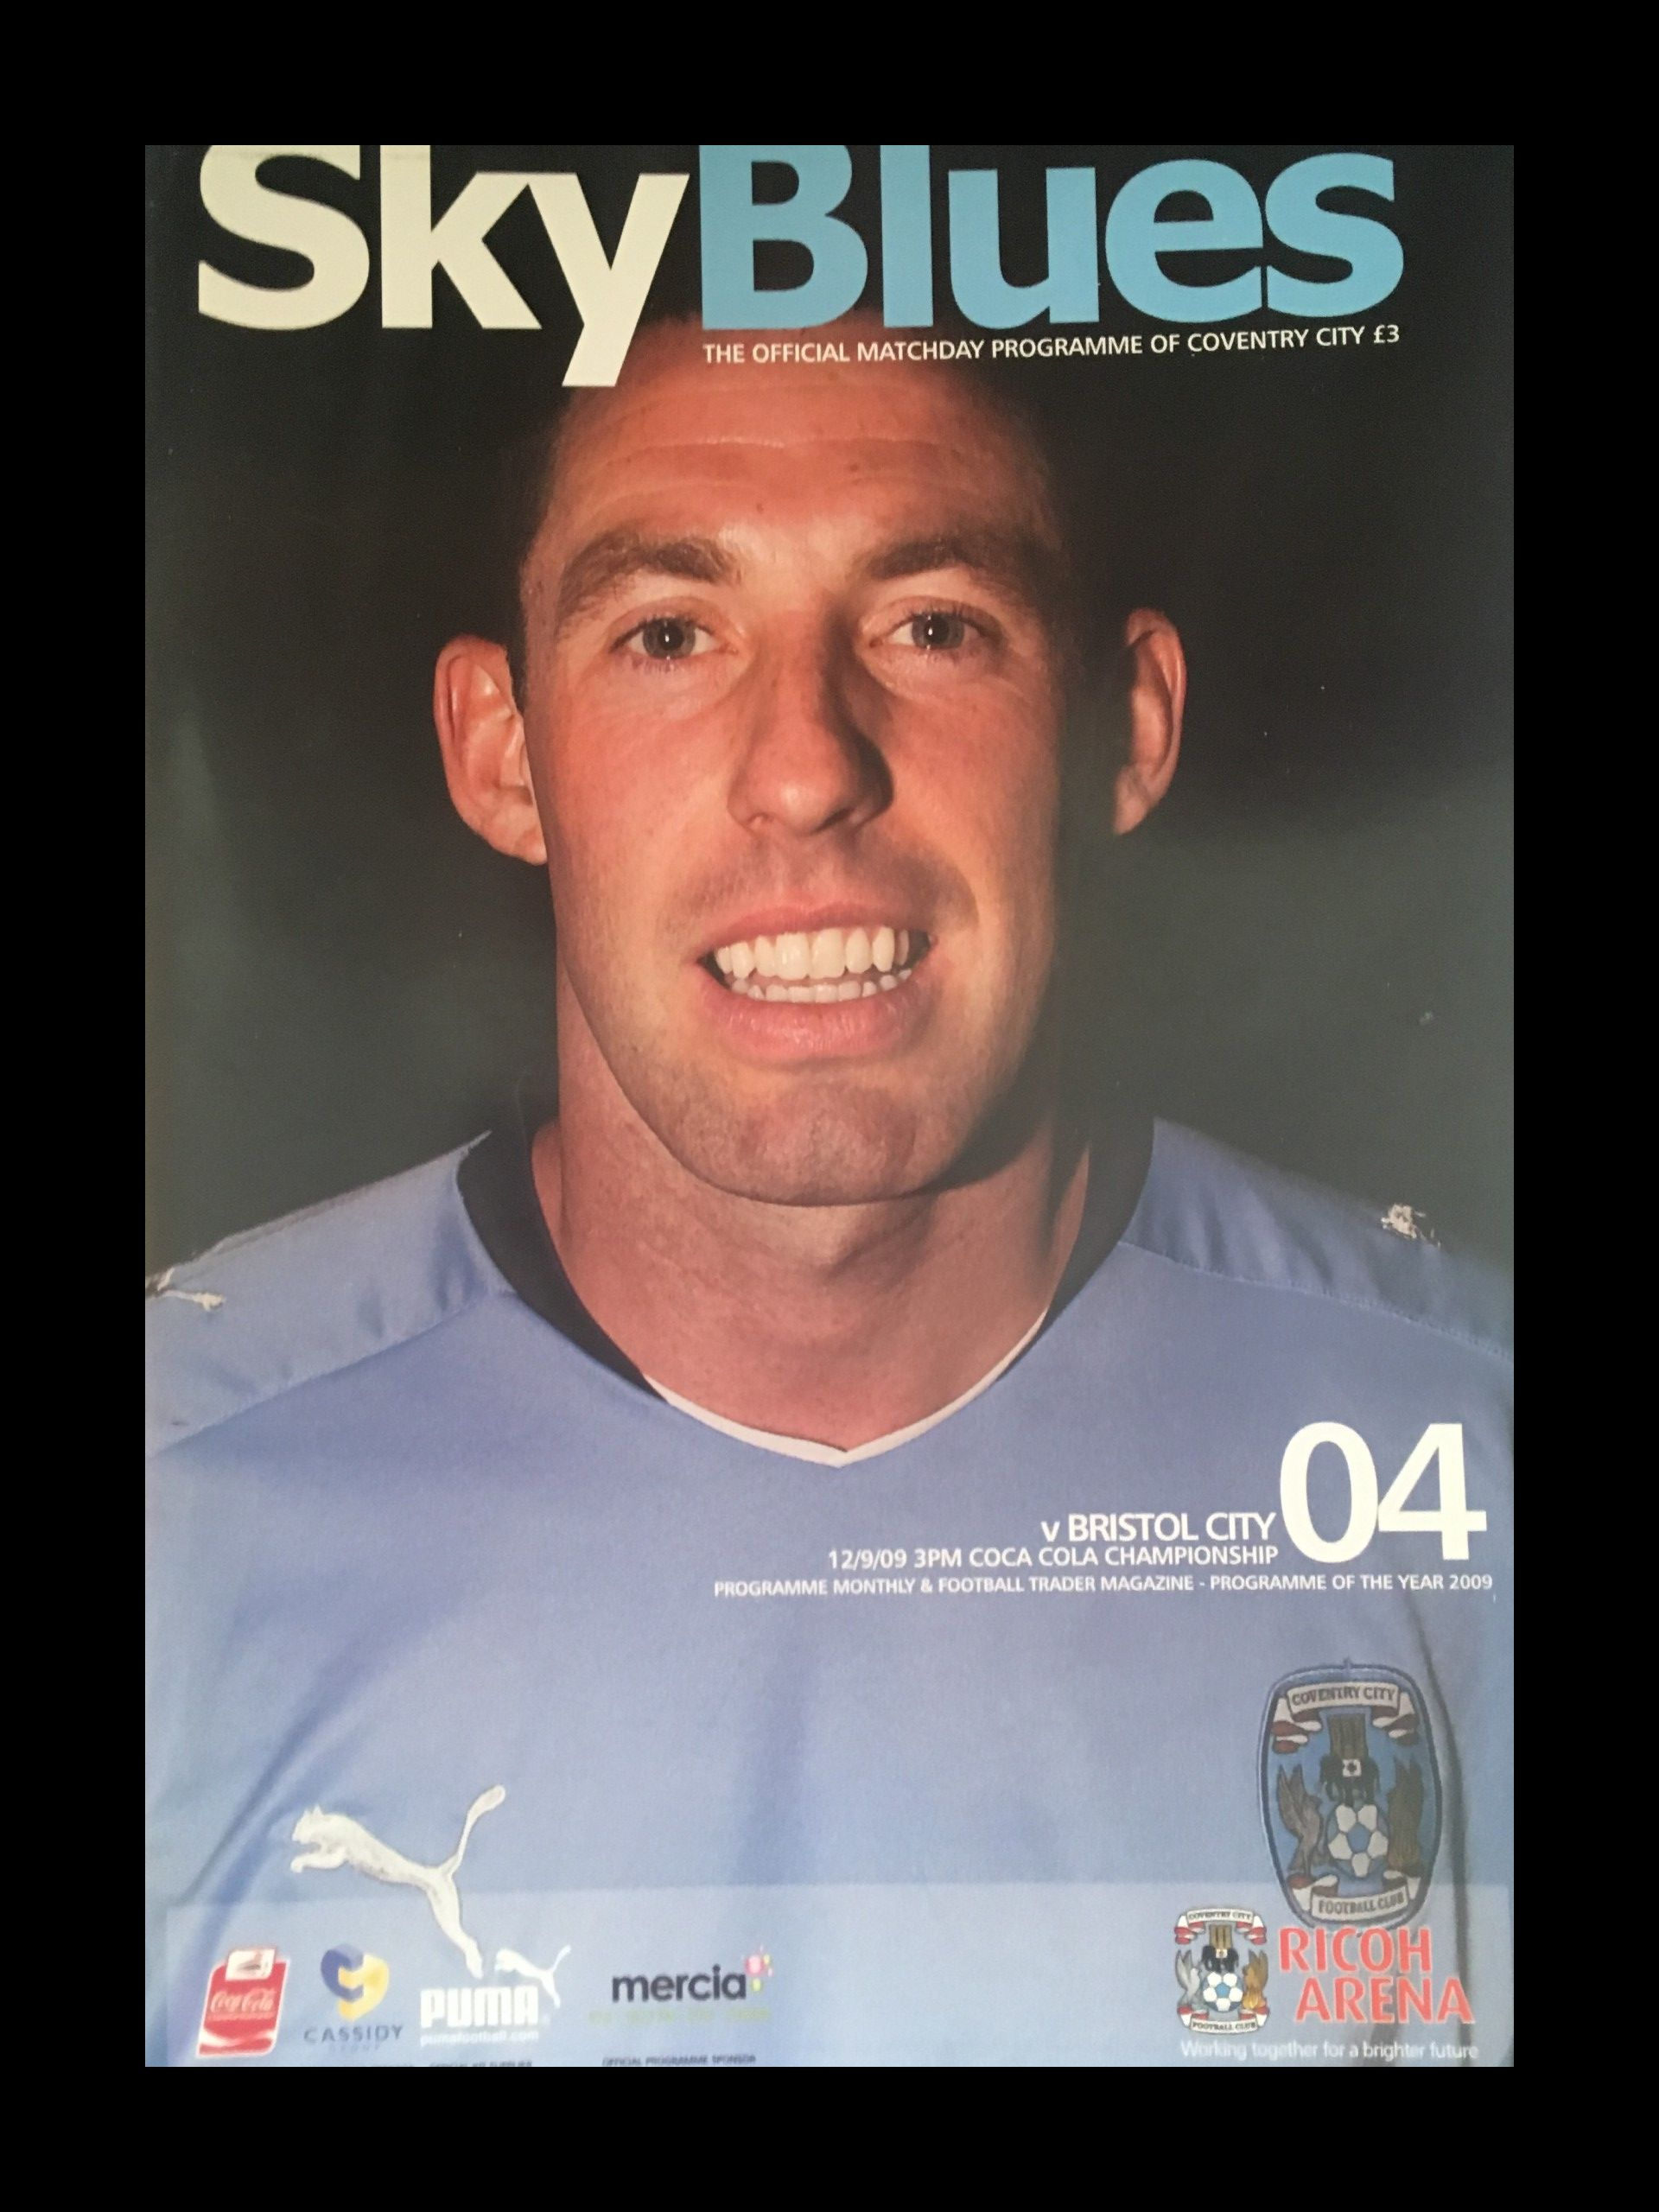 Coventry City v Bristol City 12-09-2009 Programme